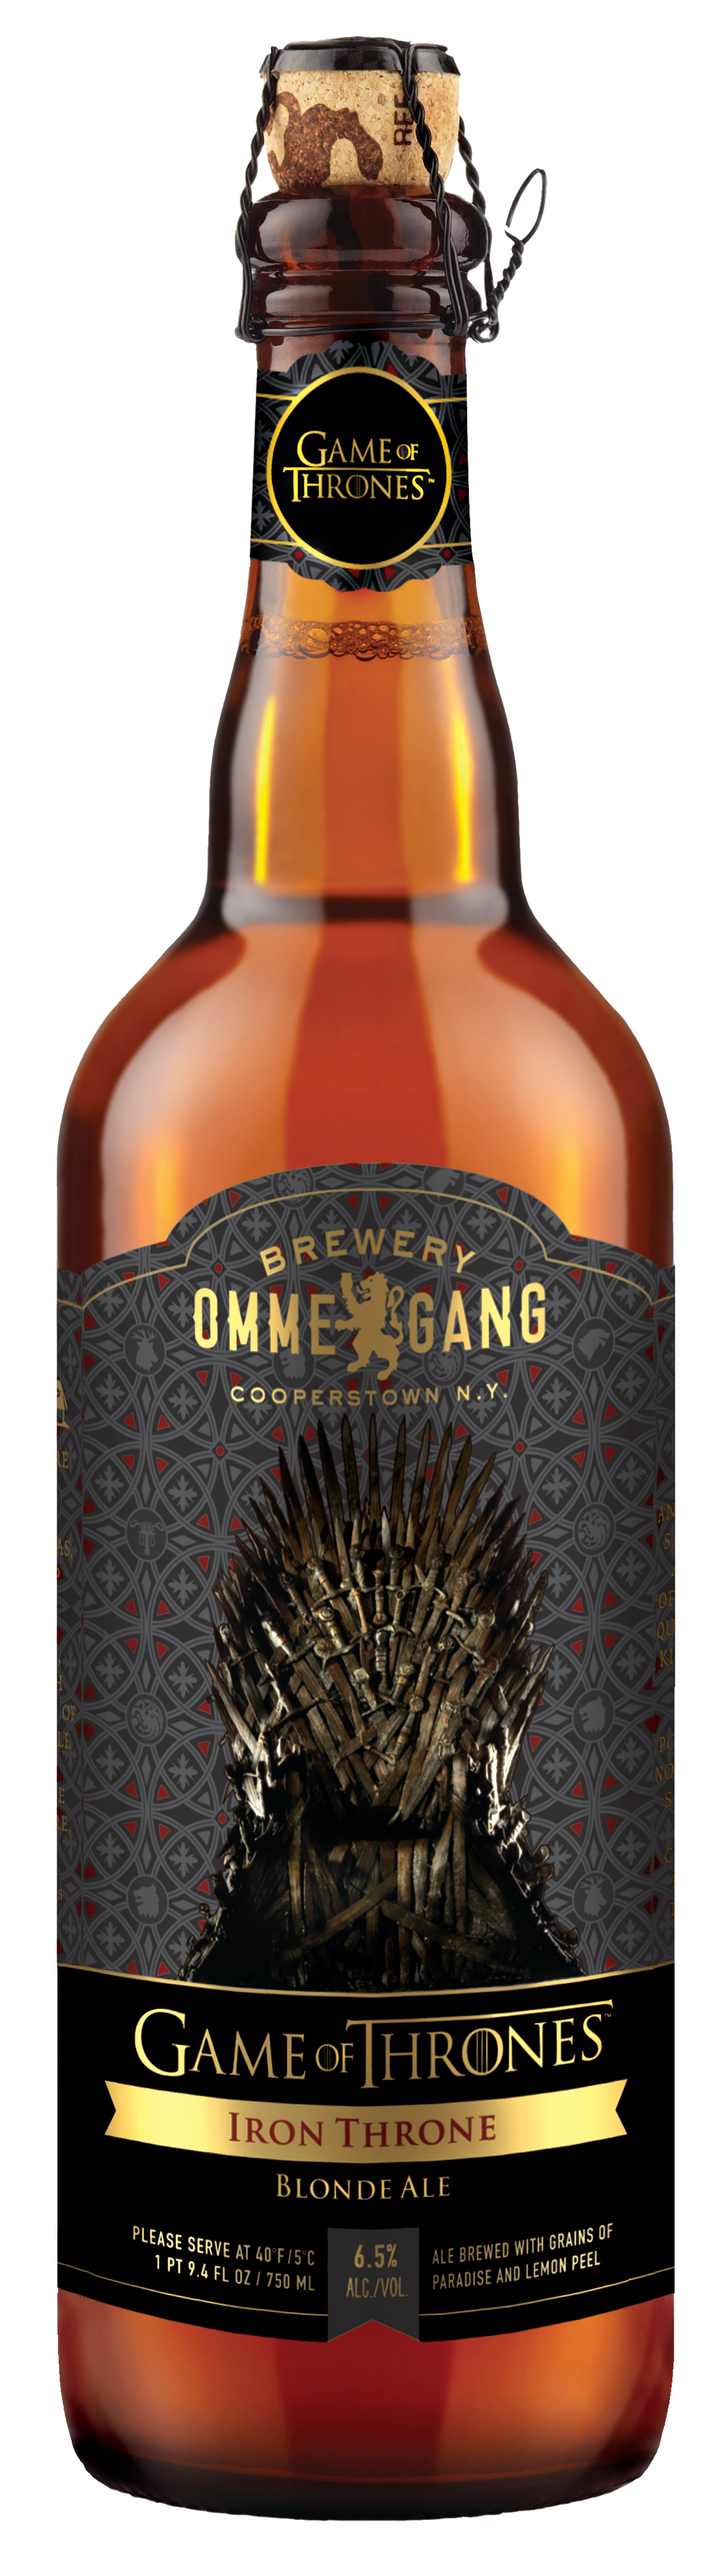 Game of Thrones inspired blonde ale from craft brewery